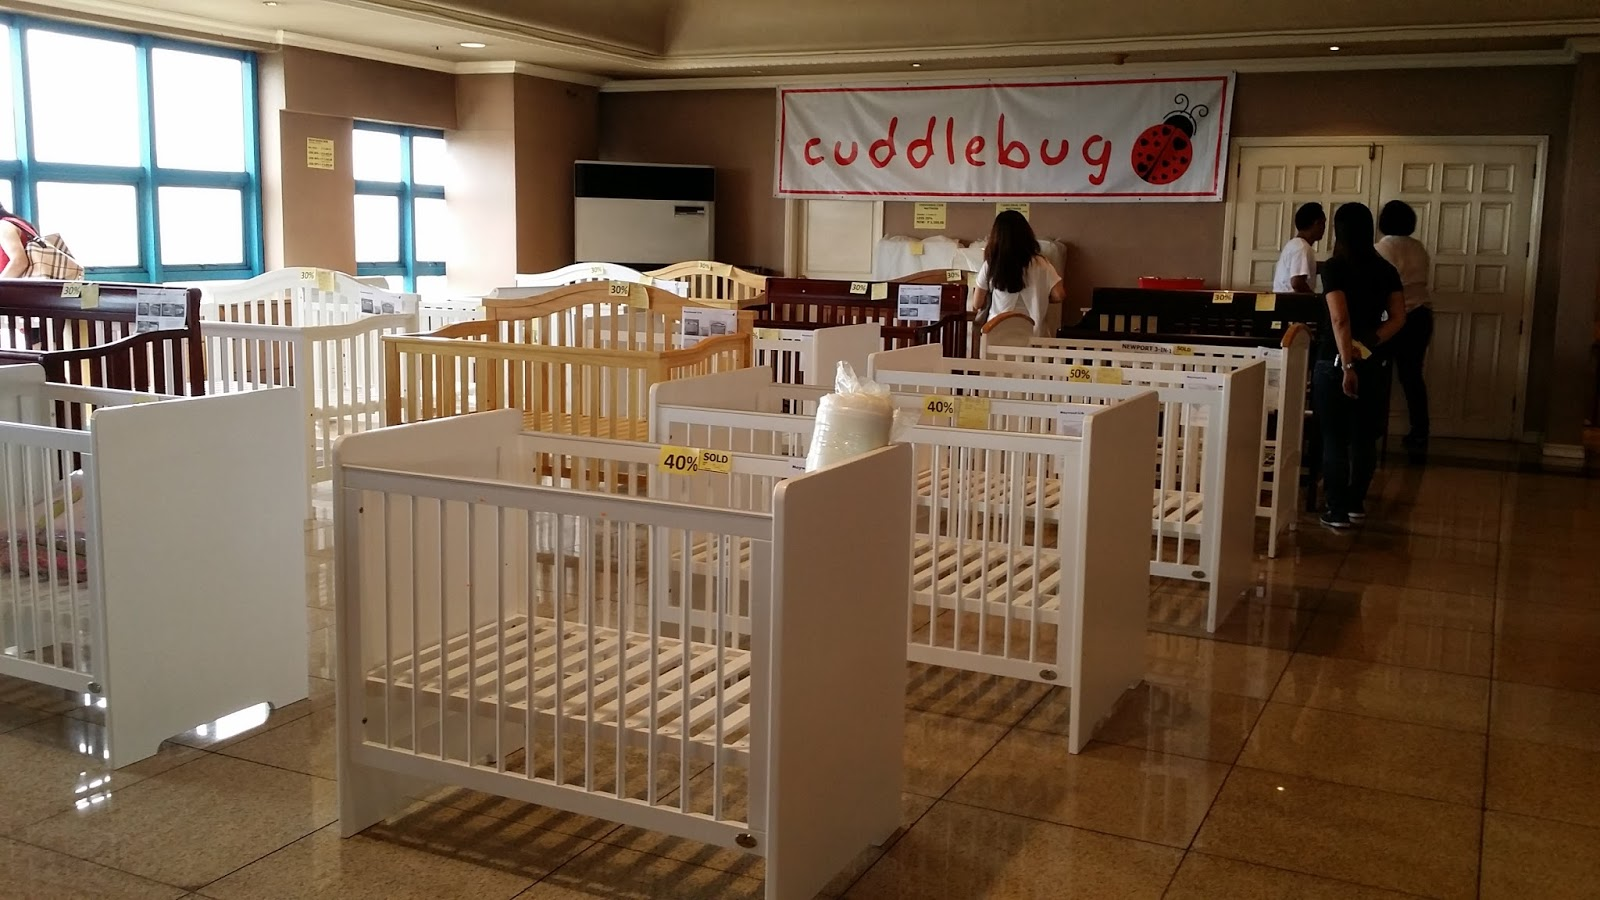 Crib for sale sulit com - Graco Crib For Sale Manila Wooden Crib For Sale Makati The Way They Do It